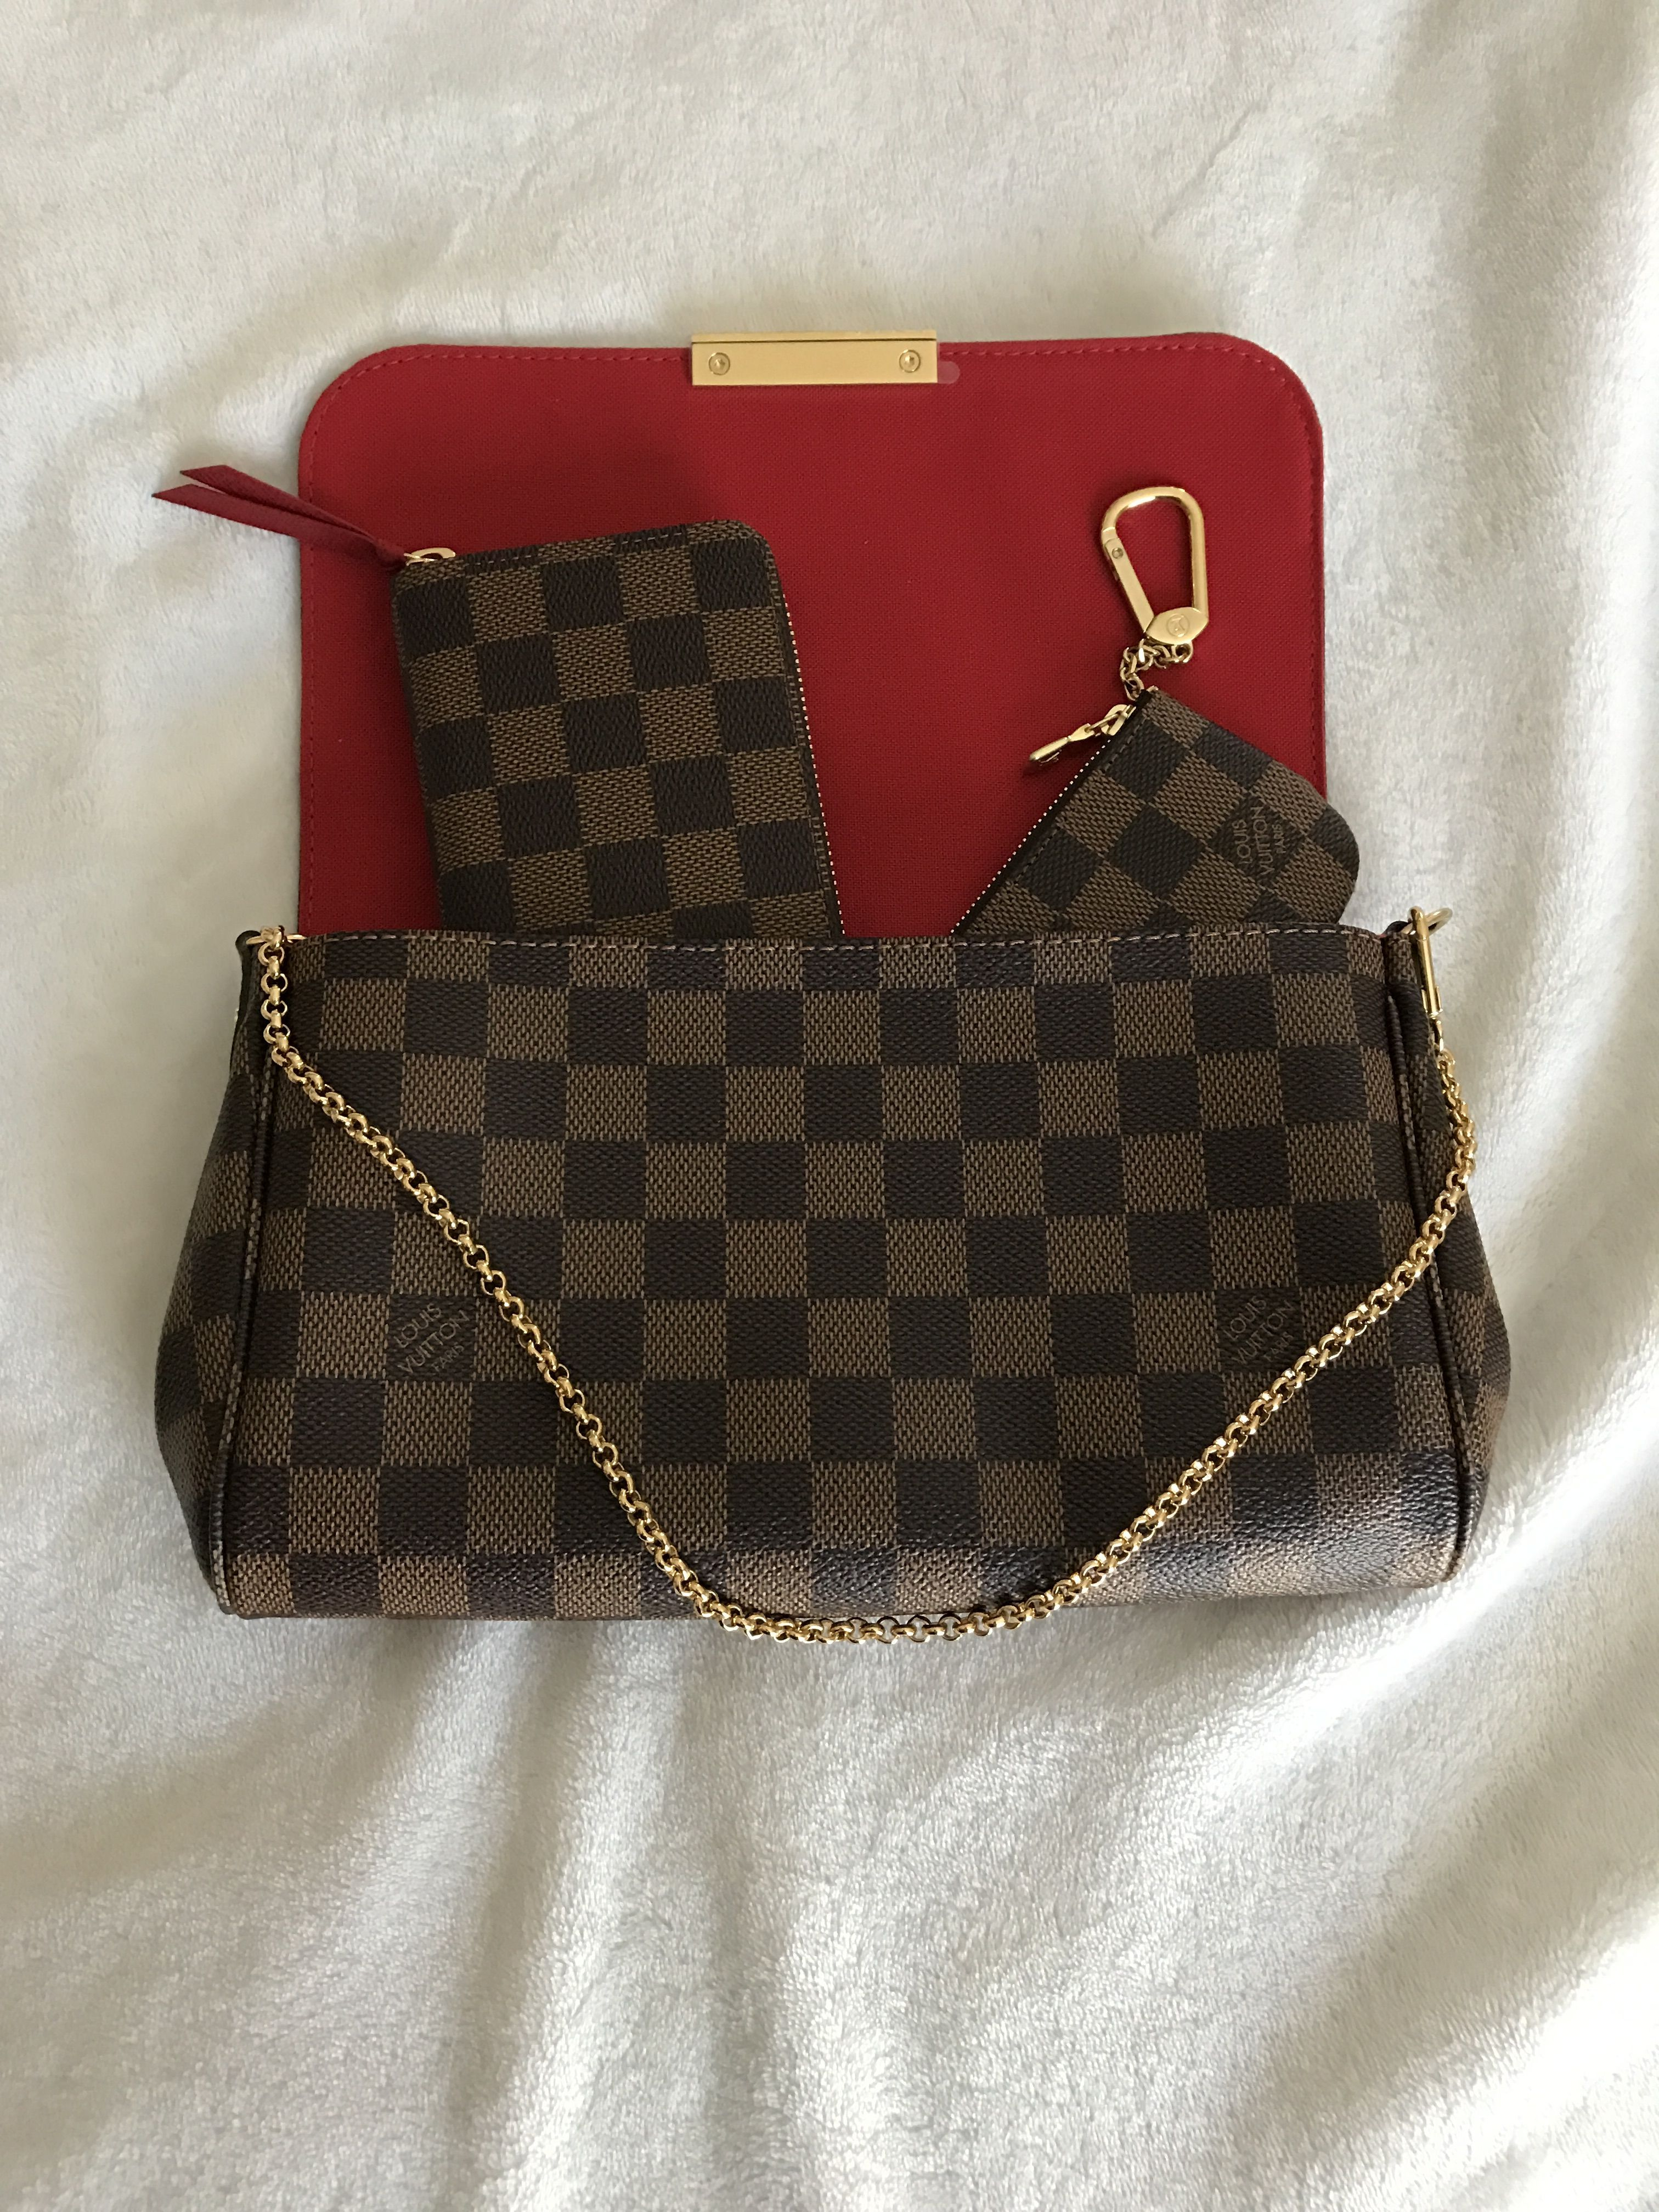 ea77af5a8f99 Louis Vuitton Favorite MM Damier Ebene with Clemence wallet and Cles ...